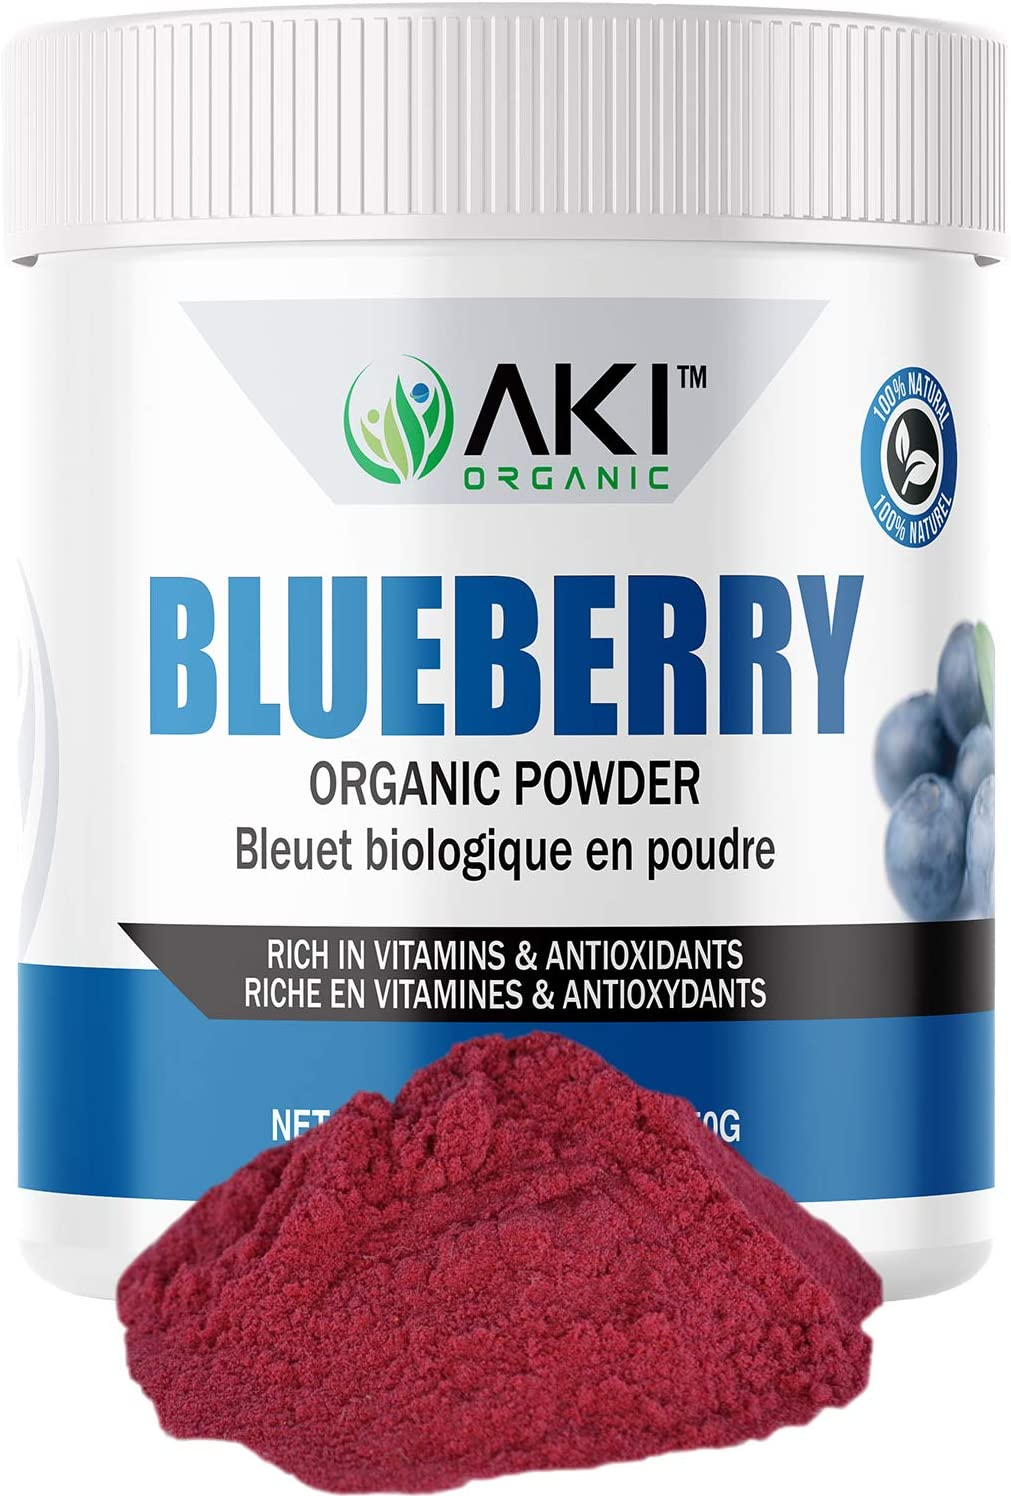 Aki Organic Blueberry Powder Dried Superfood Rich in Antioxidant, Sugar Free, Bulk Powdered Blueberries Fruit for Baking, Flavoring, Smoothie, Yogurt, Recipes, Sprinkle of Magenta Color 5.29 Oz/150Gr